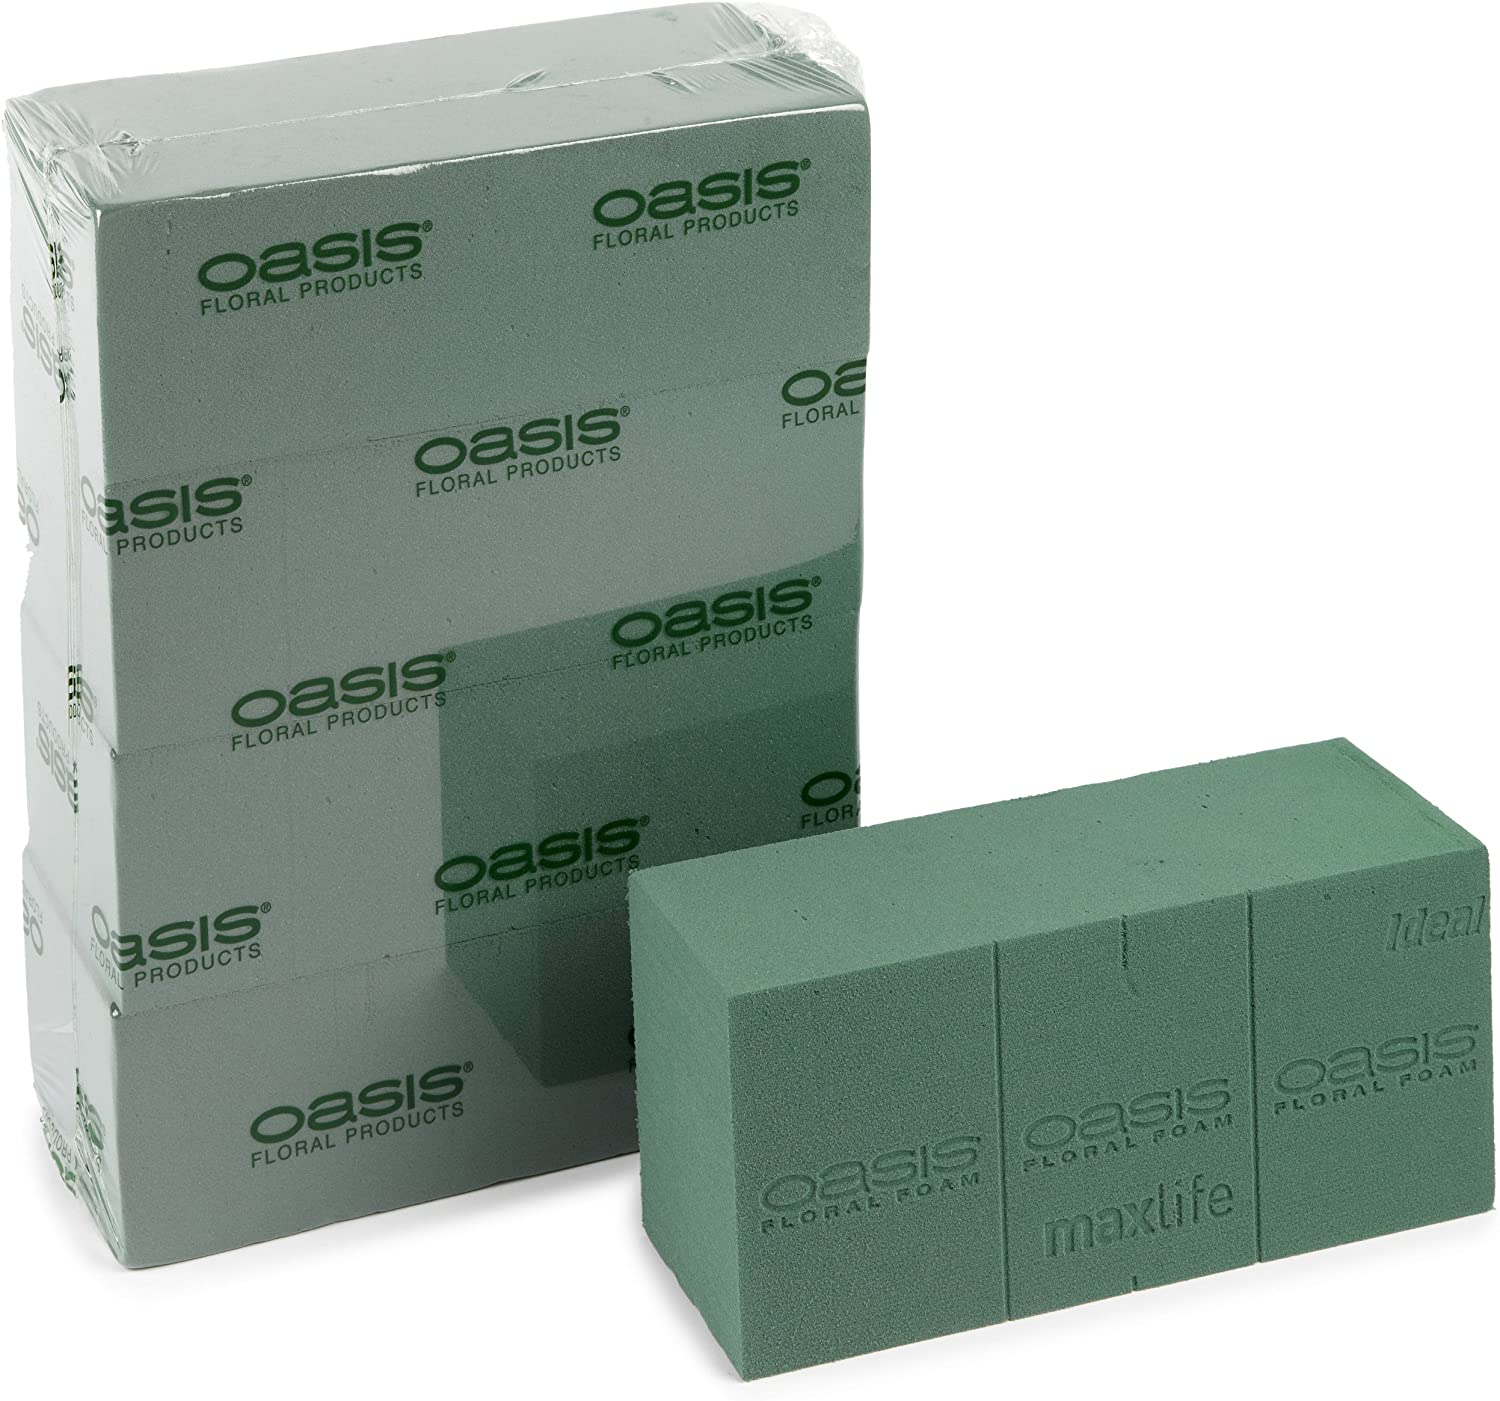 Oasis Ideal Floral Foam Wet Brick or Block Qty 2